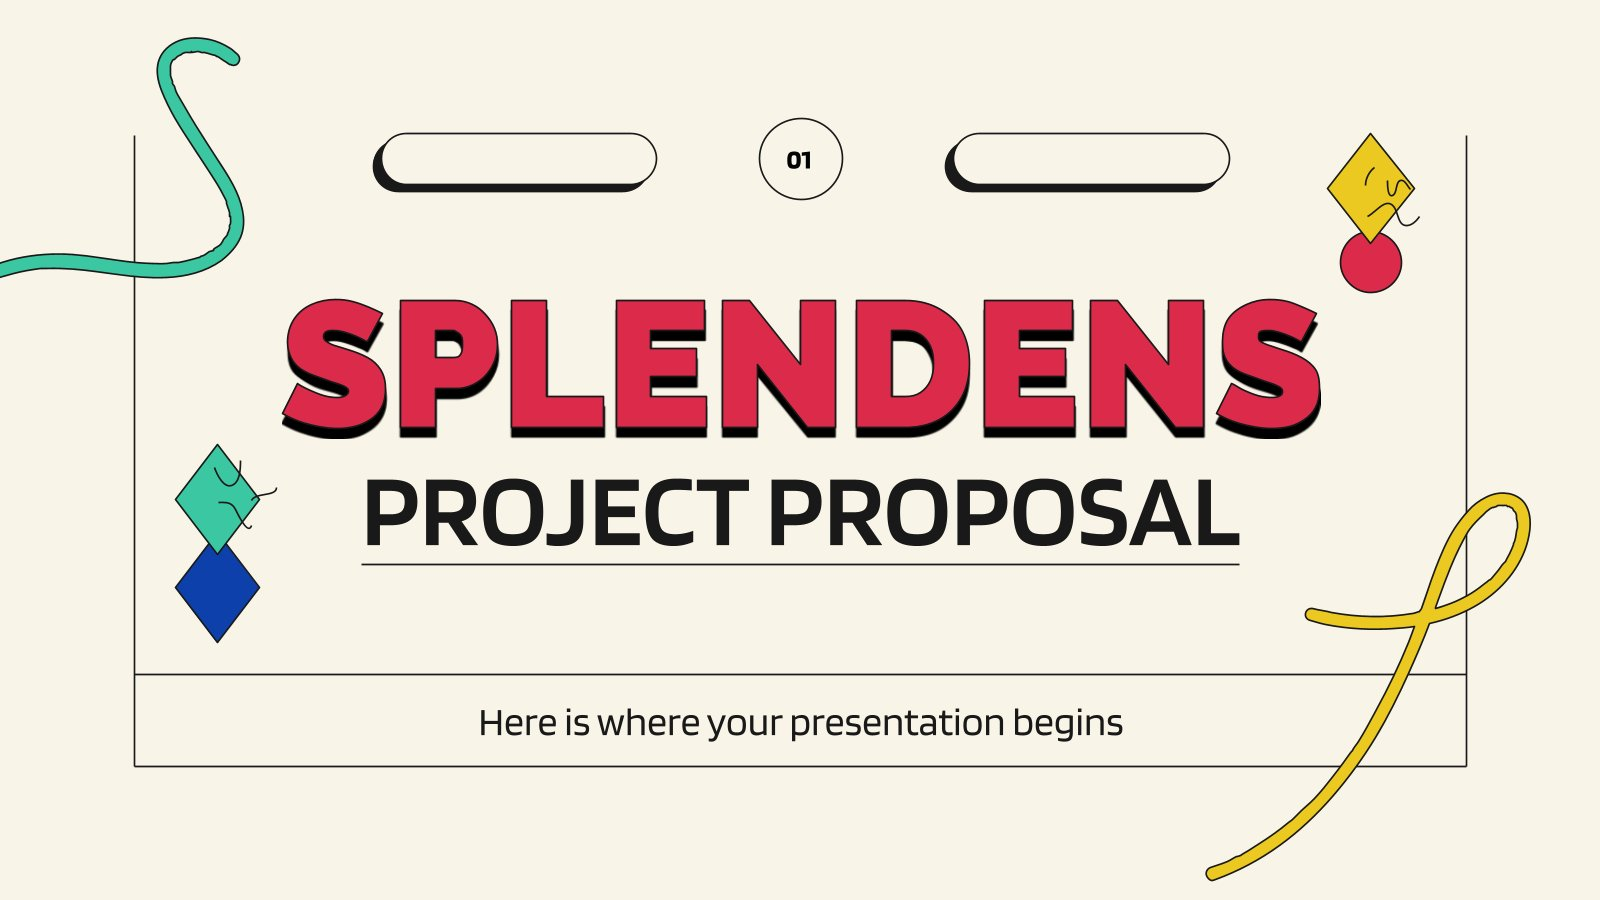 Splendens Project Proposal presentation template